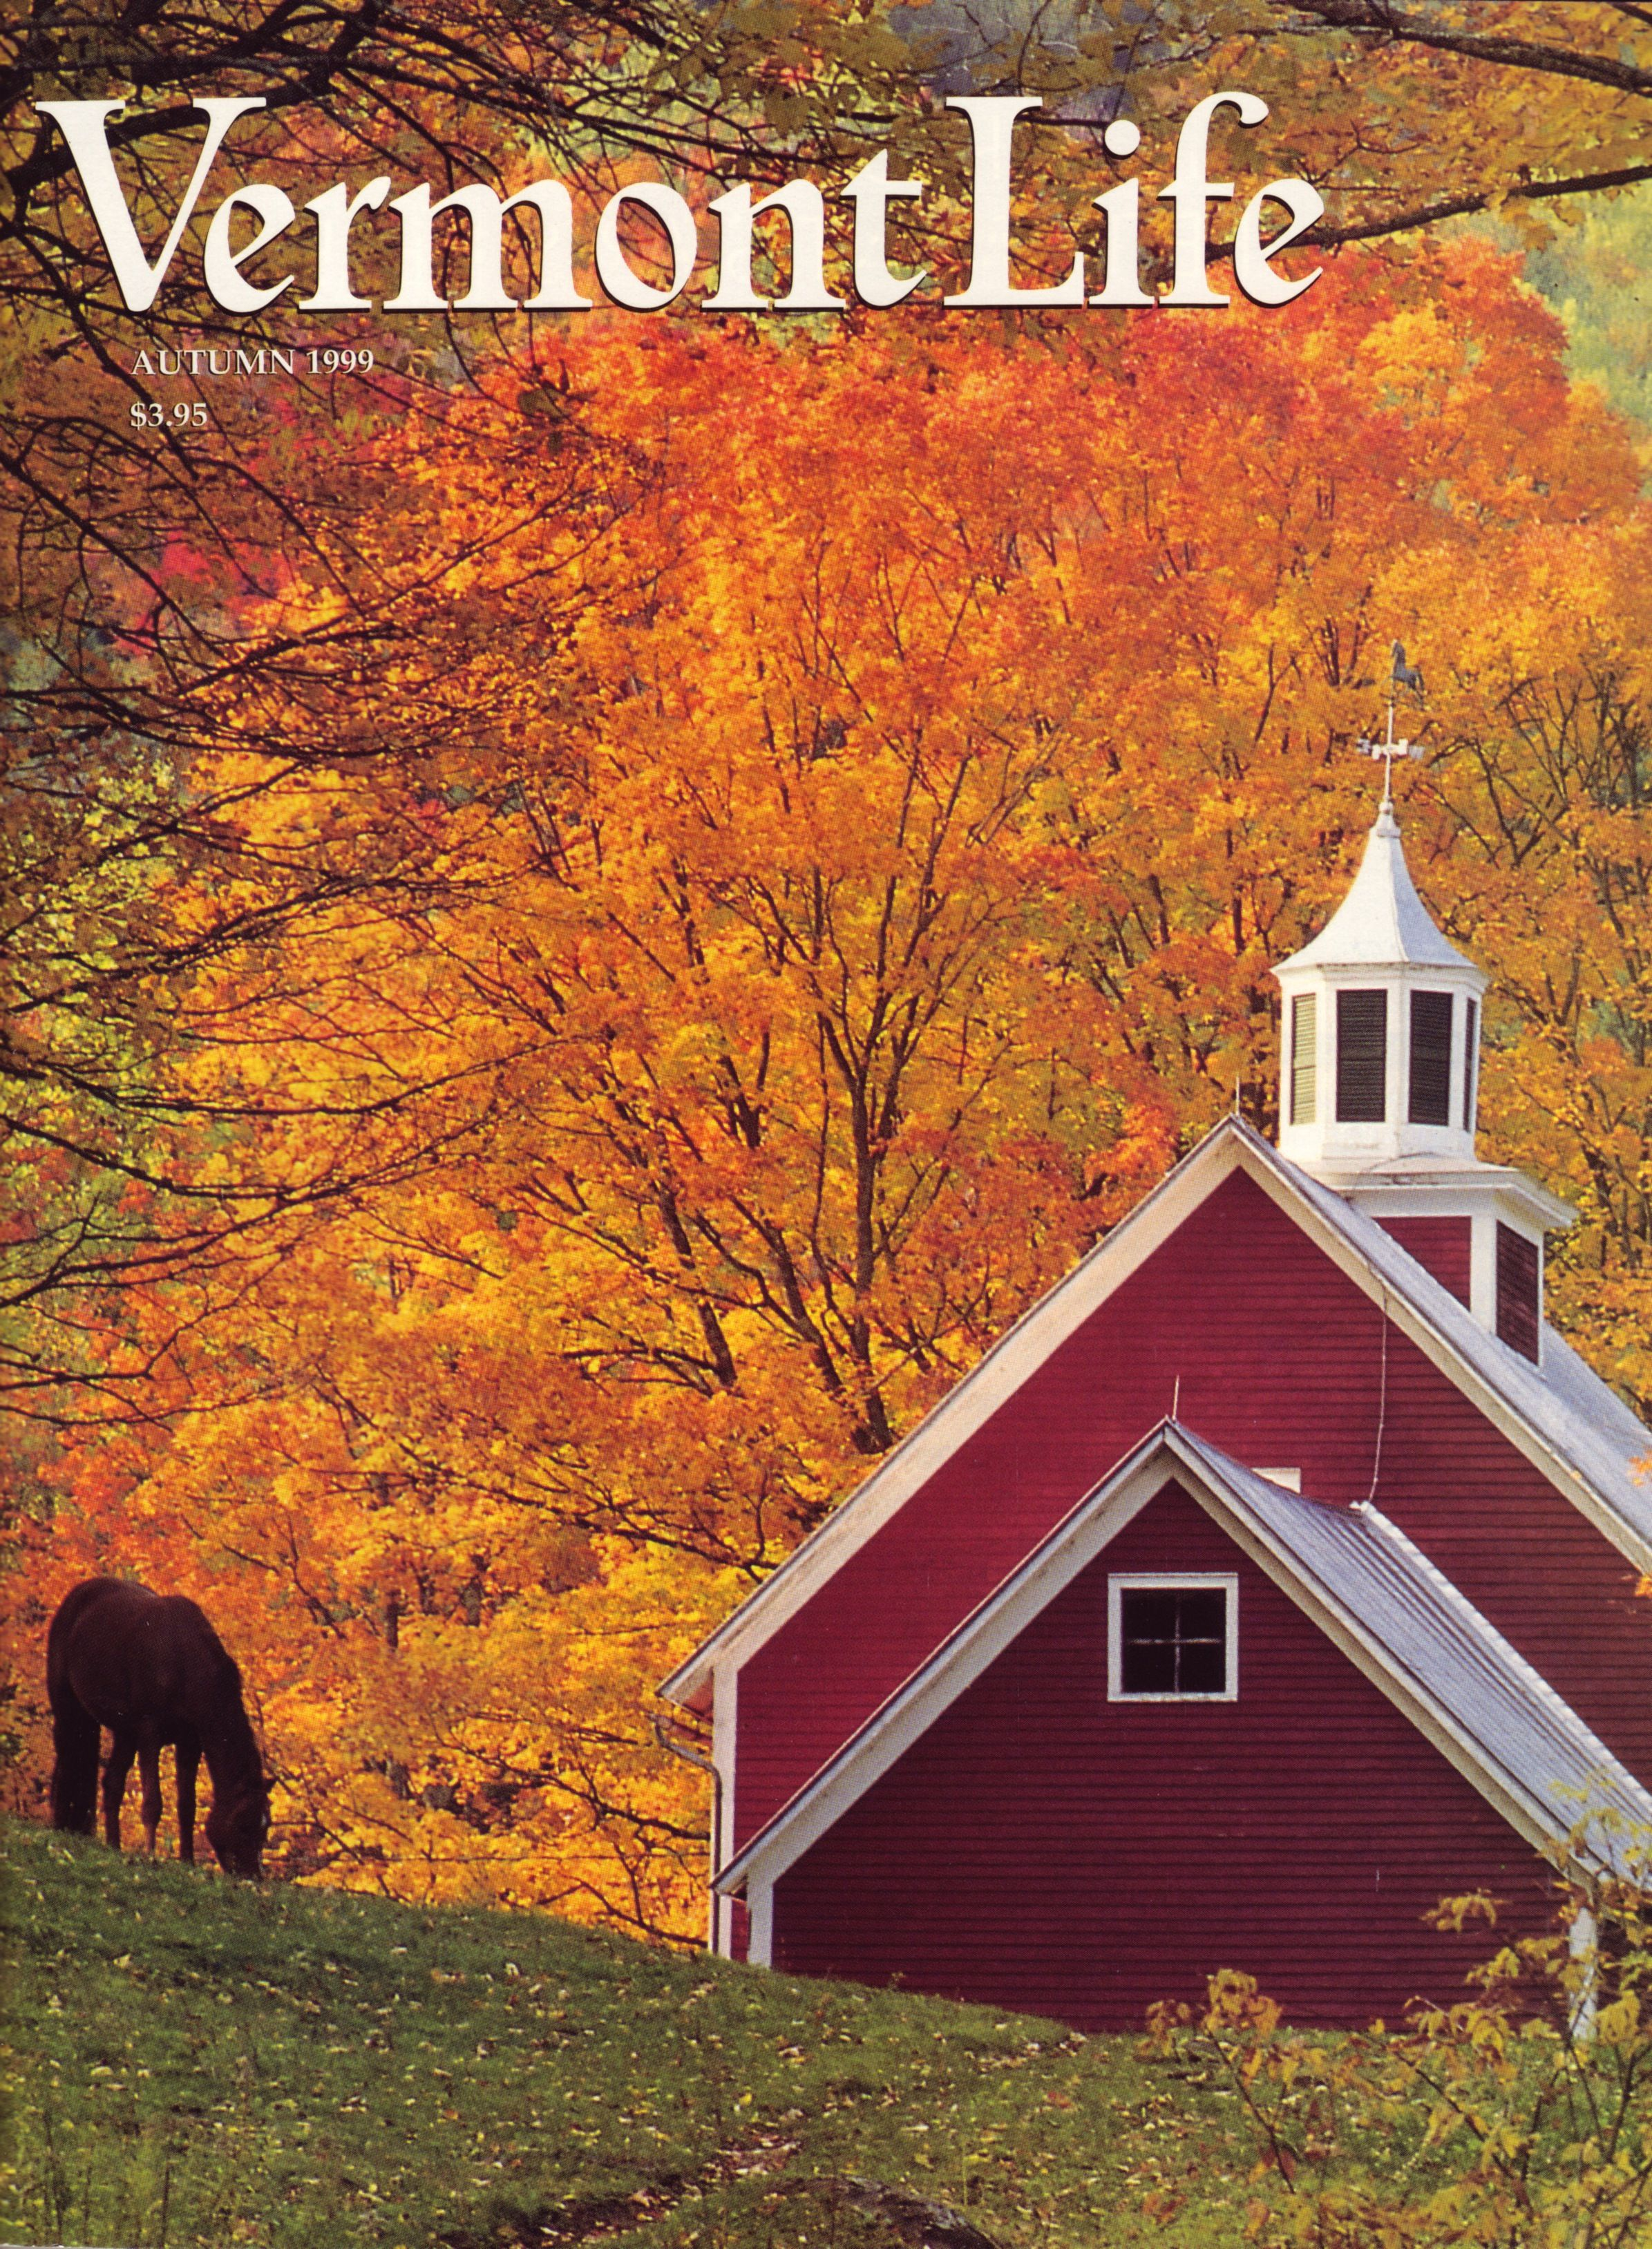 Pin by vermont life on vermont life covers pinterest